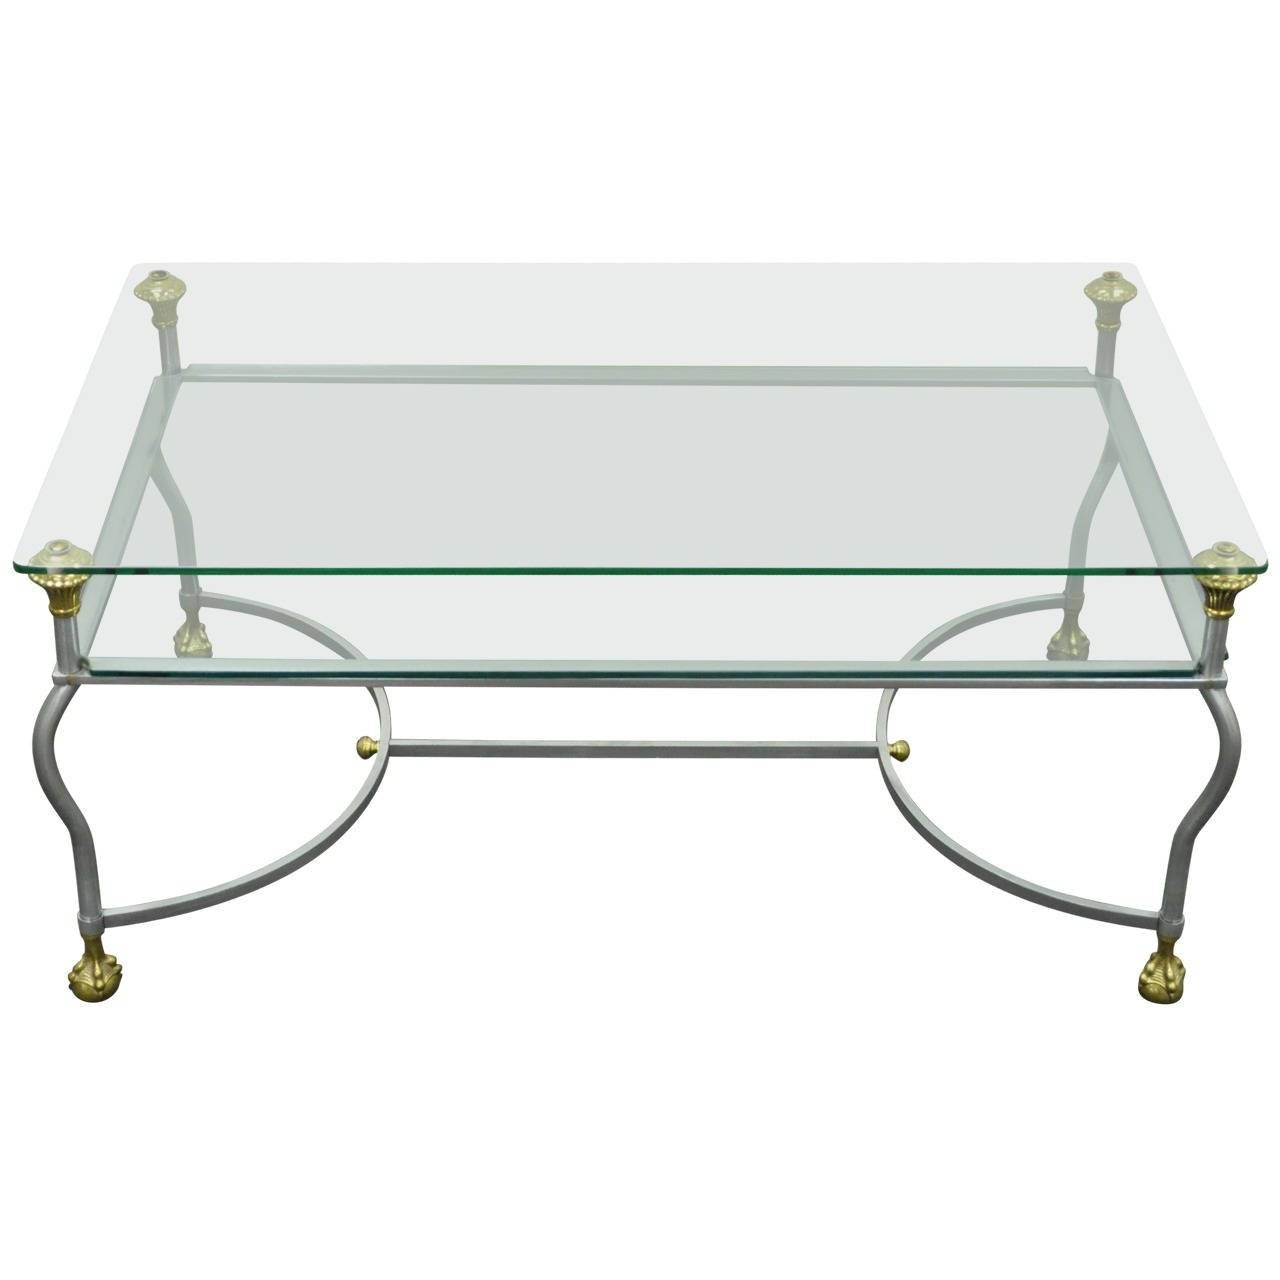 Rare Brass, Brushed Steel, And Glass Claw Foot Coffee Table After intended for Glass Steel Coffee Tables (Image 26 of 30)